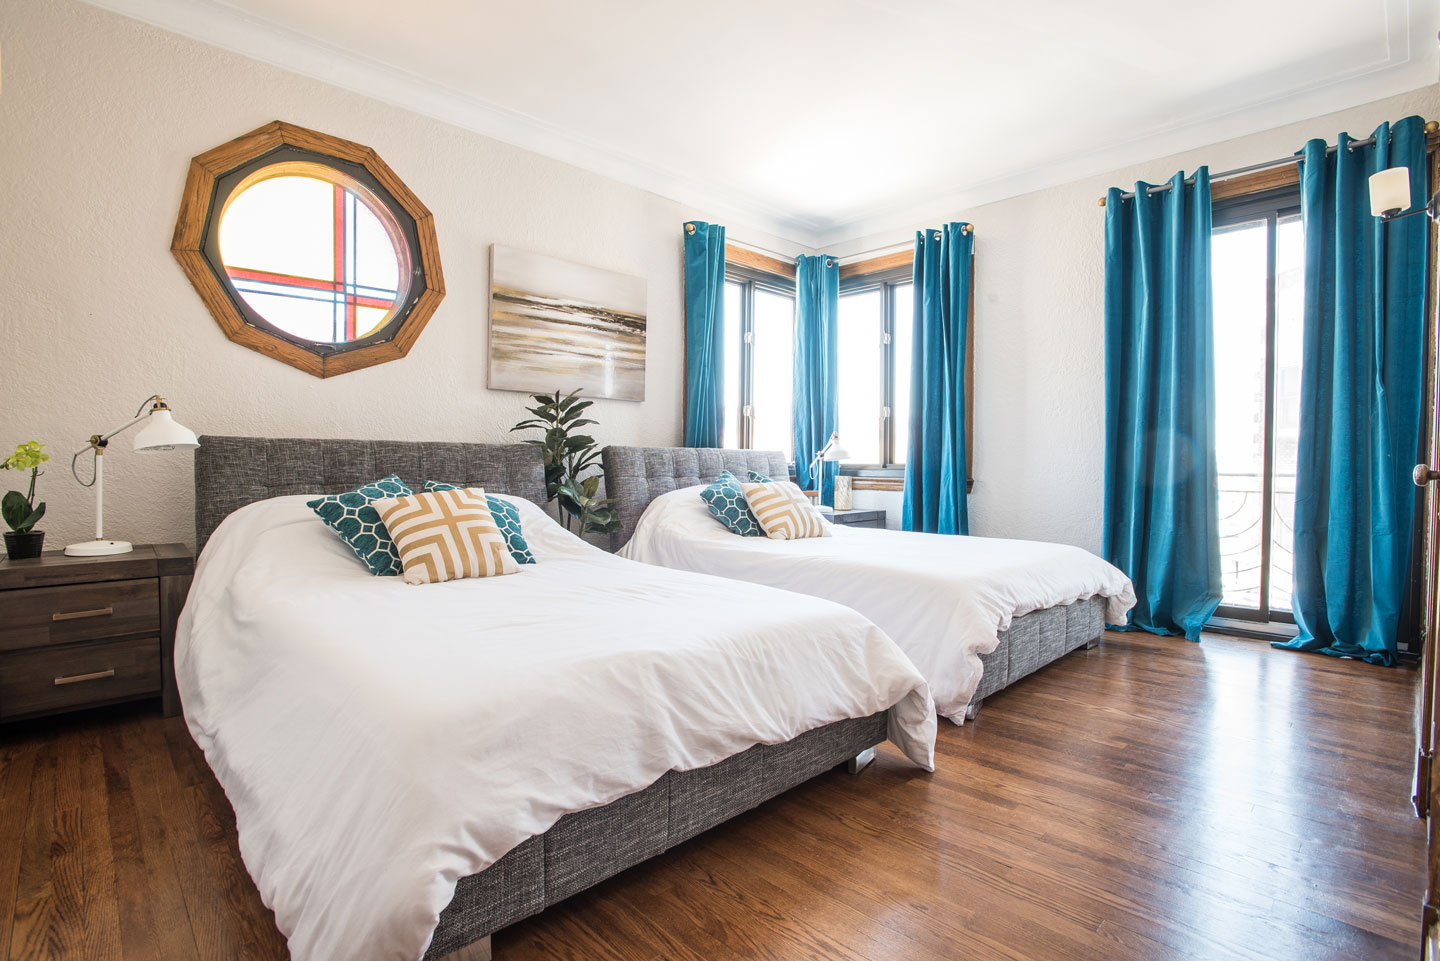 Golden kiss: master bedroom with 2 double beds and comfortable memory foam mattresses